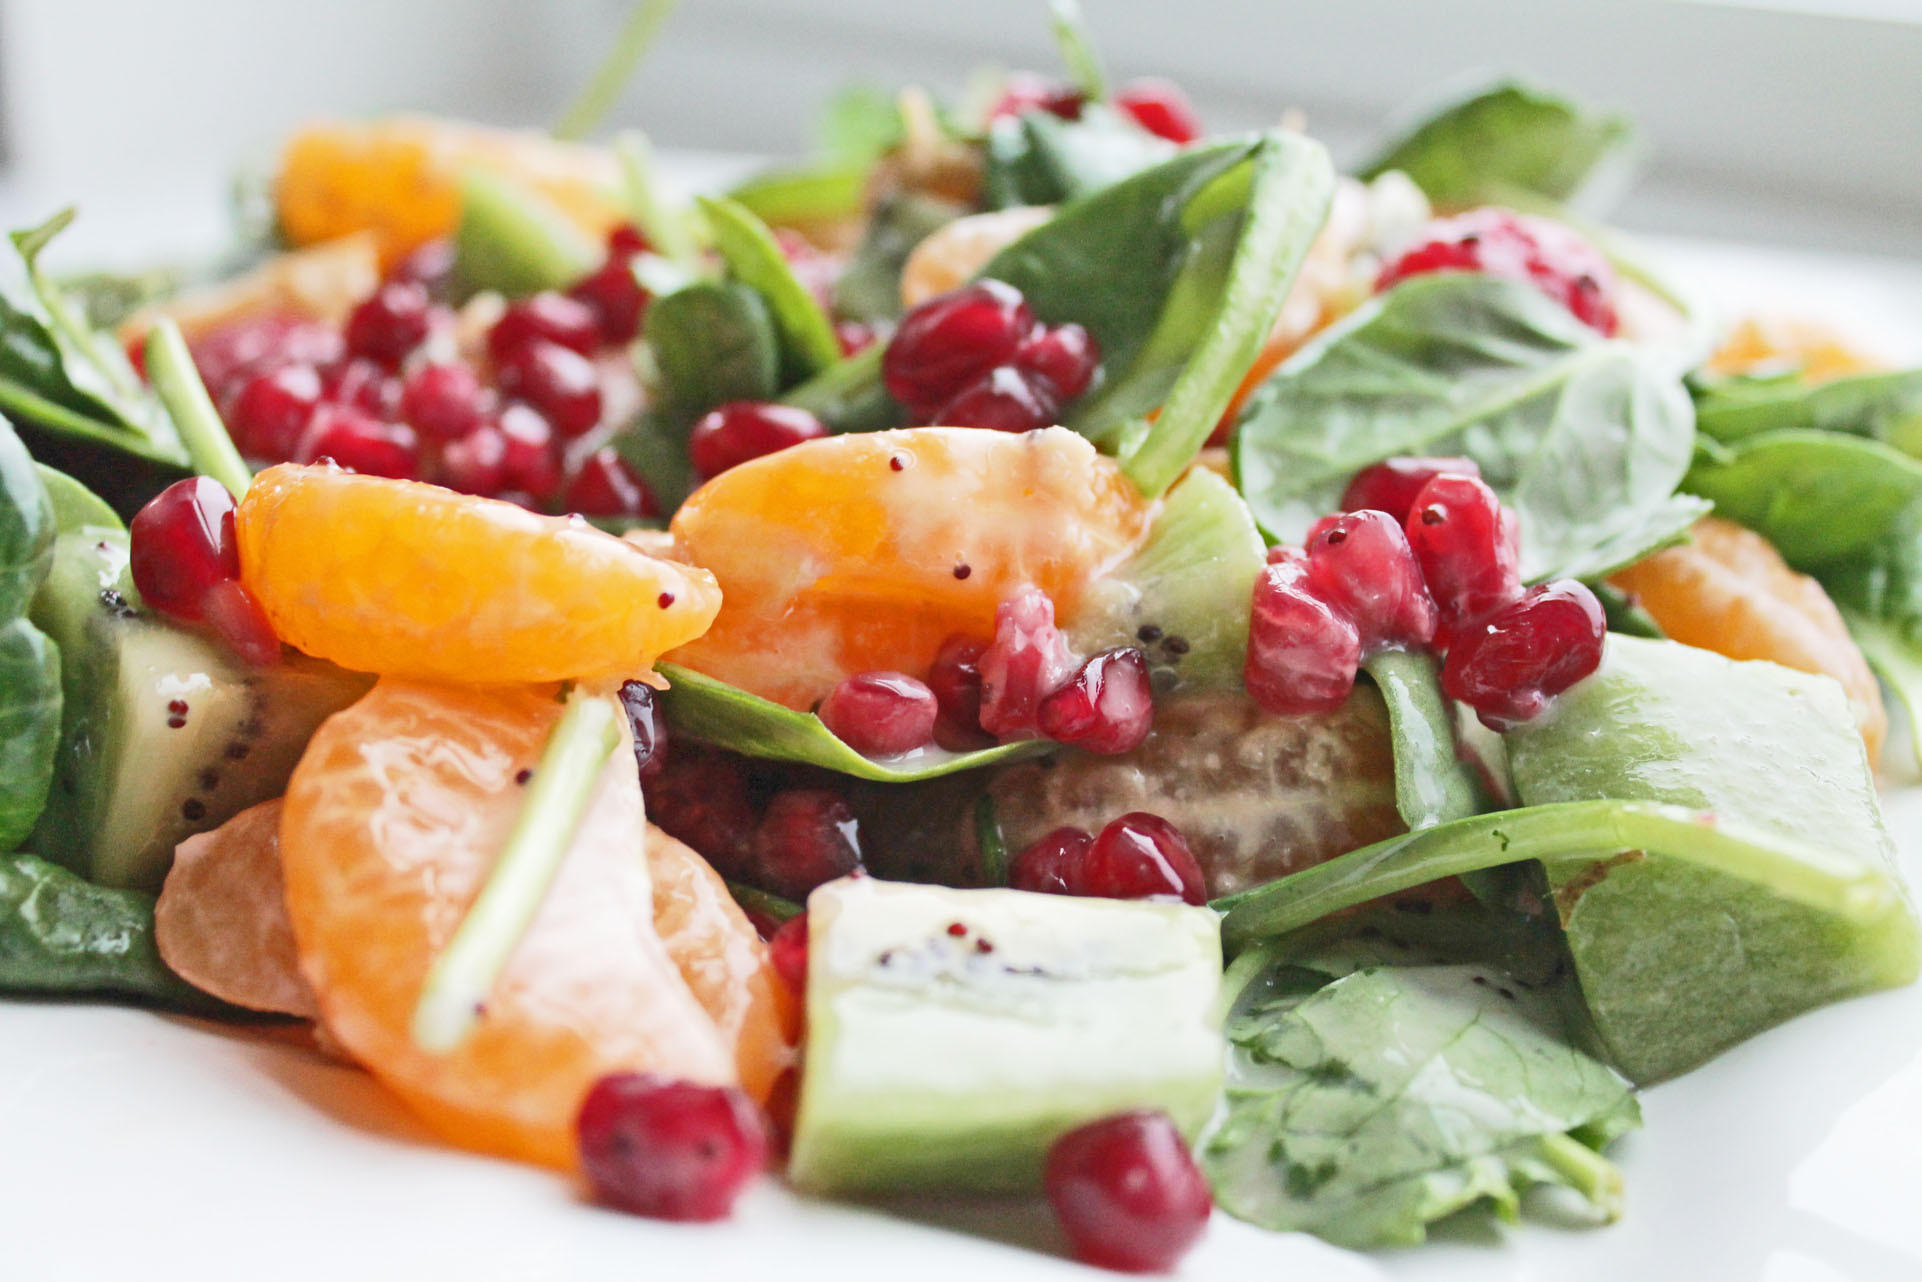 Salads Recipes Healthy  Healthy Salad Recipe with Fruits and Spinach